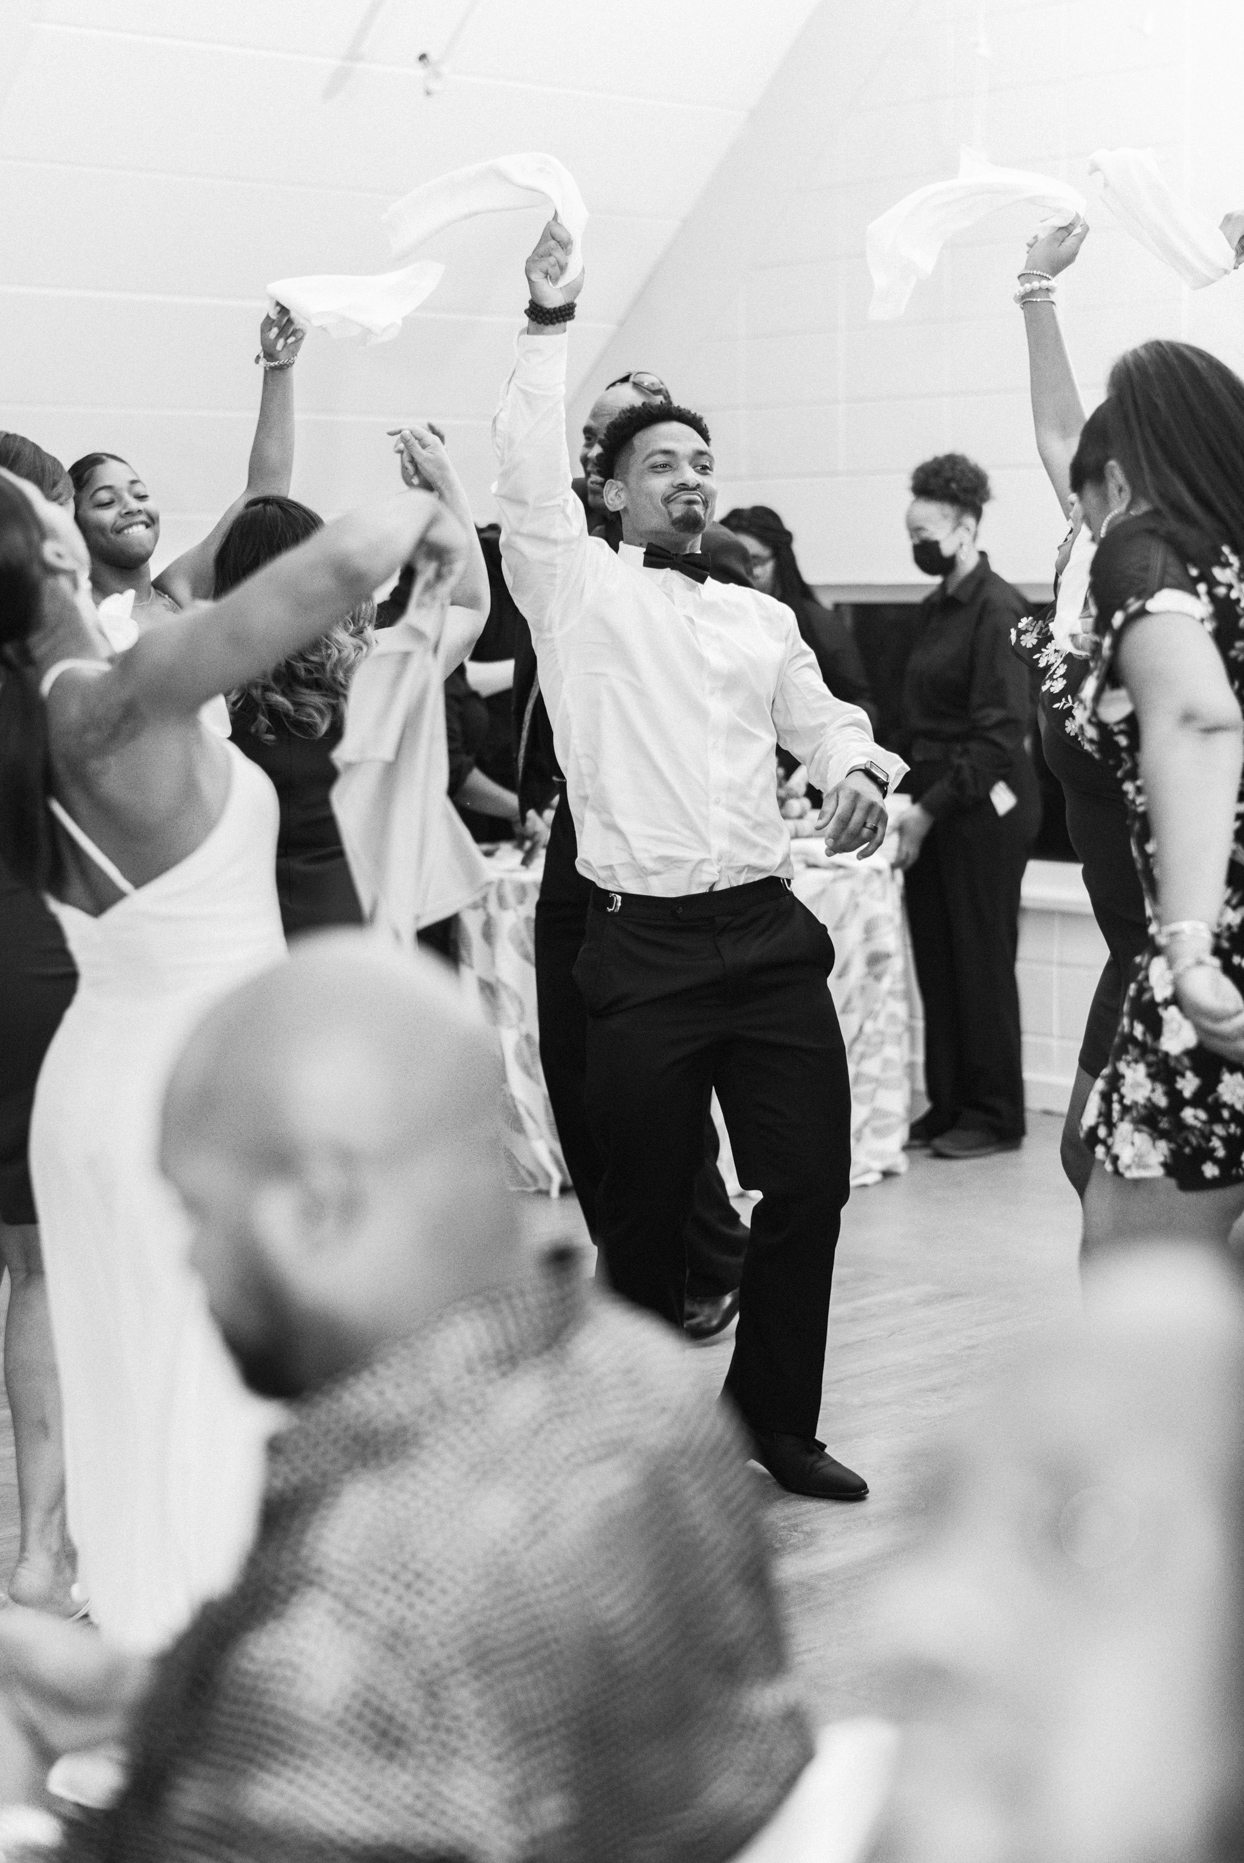 groom dancing in the middle of guests on reception dance floor